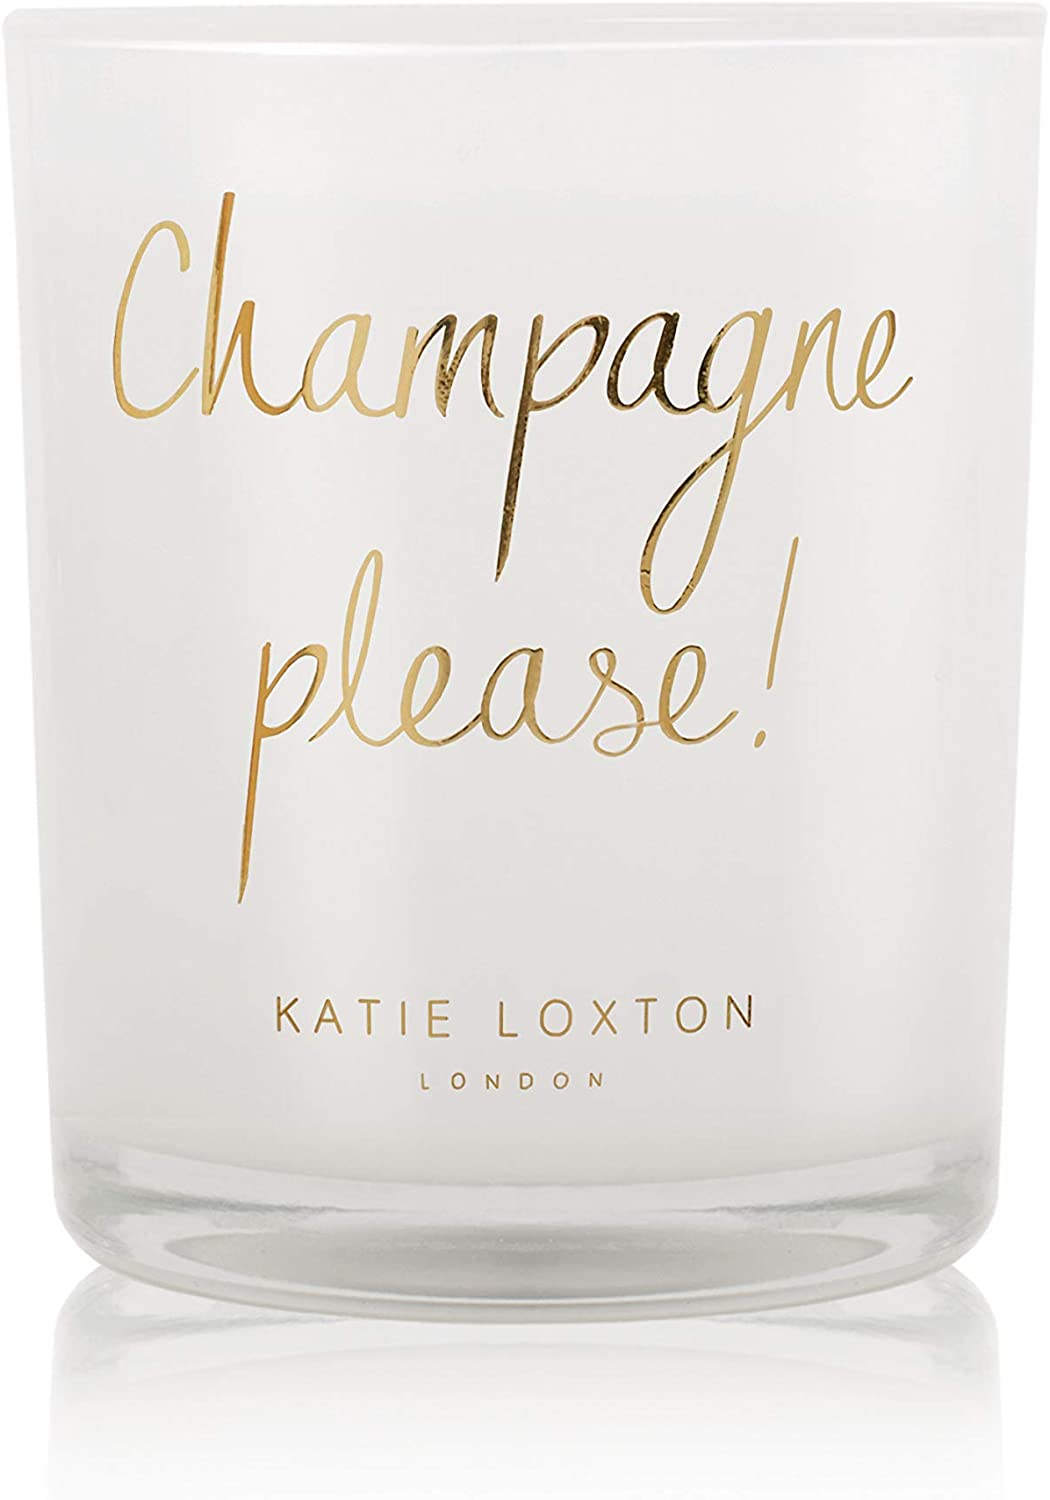 Katie Loxton Champagne Please 5.6 Ounce Soy Wax Metallic Candle Scented Pink Champagne & Sweetheart Strawberry